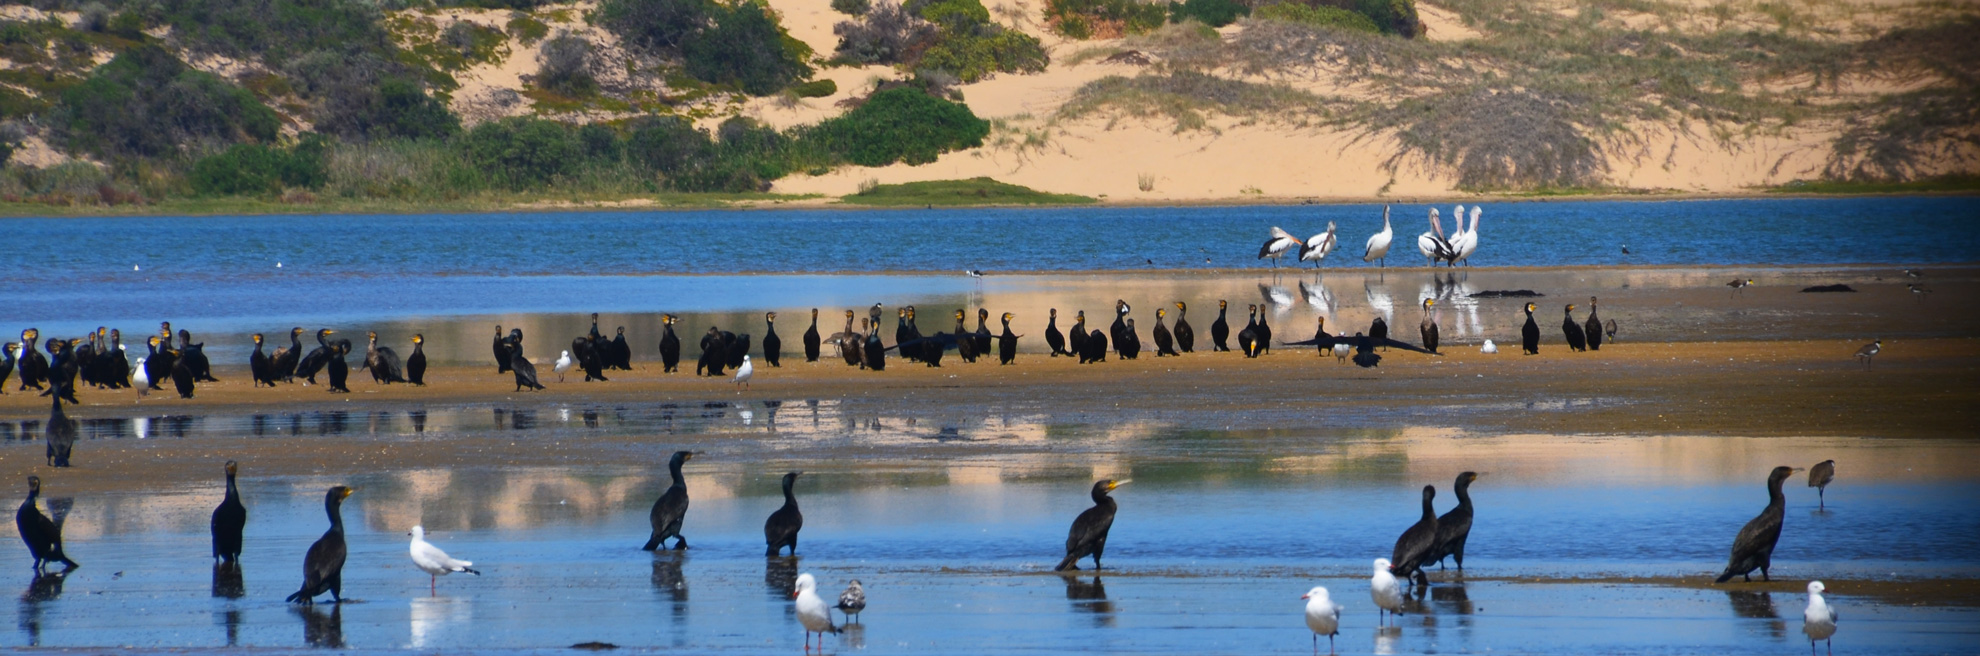 Australian Iconic Tours Group Tours And Charters In Australia - Australian tours